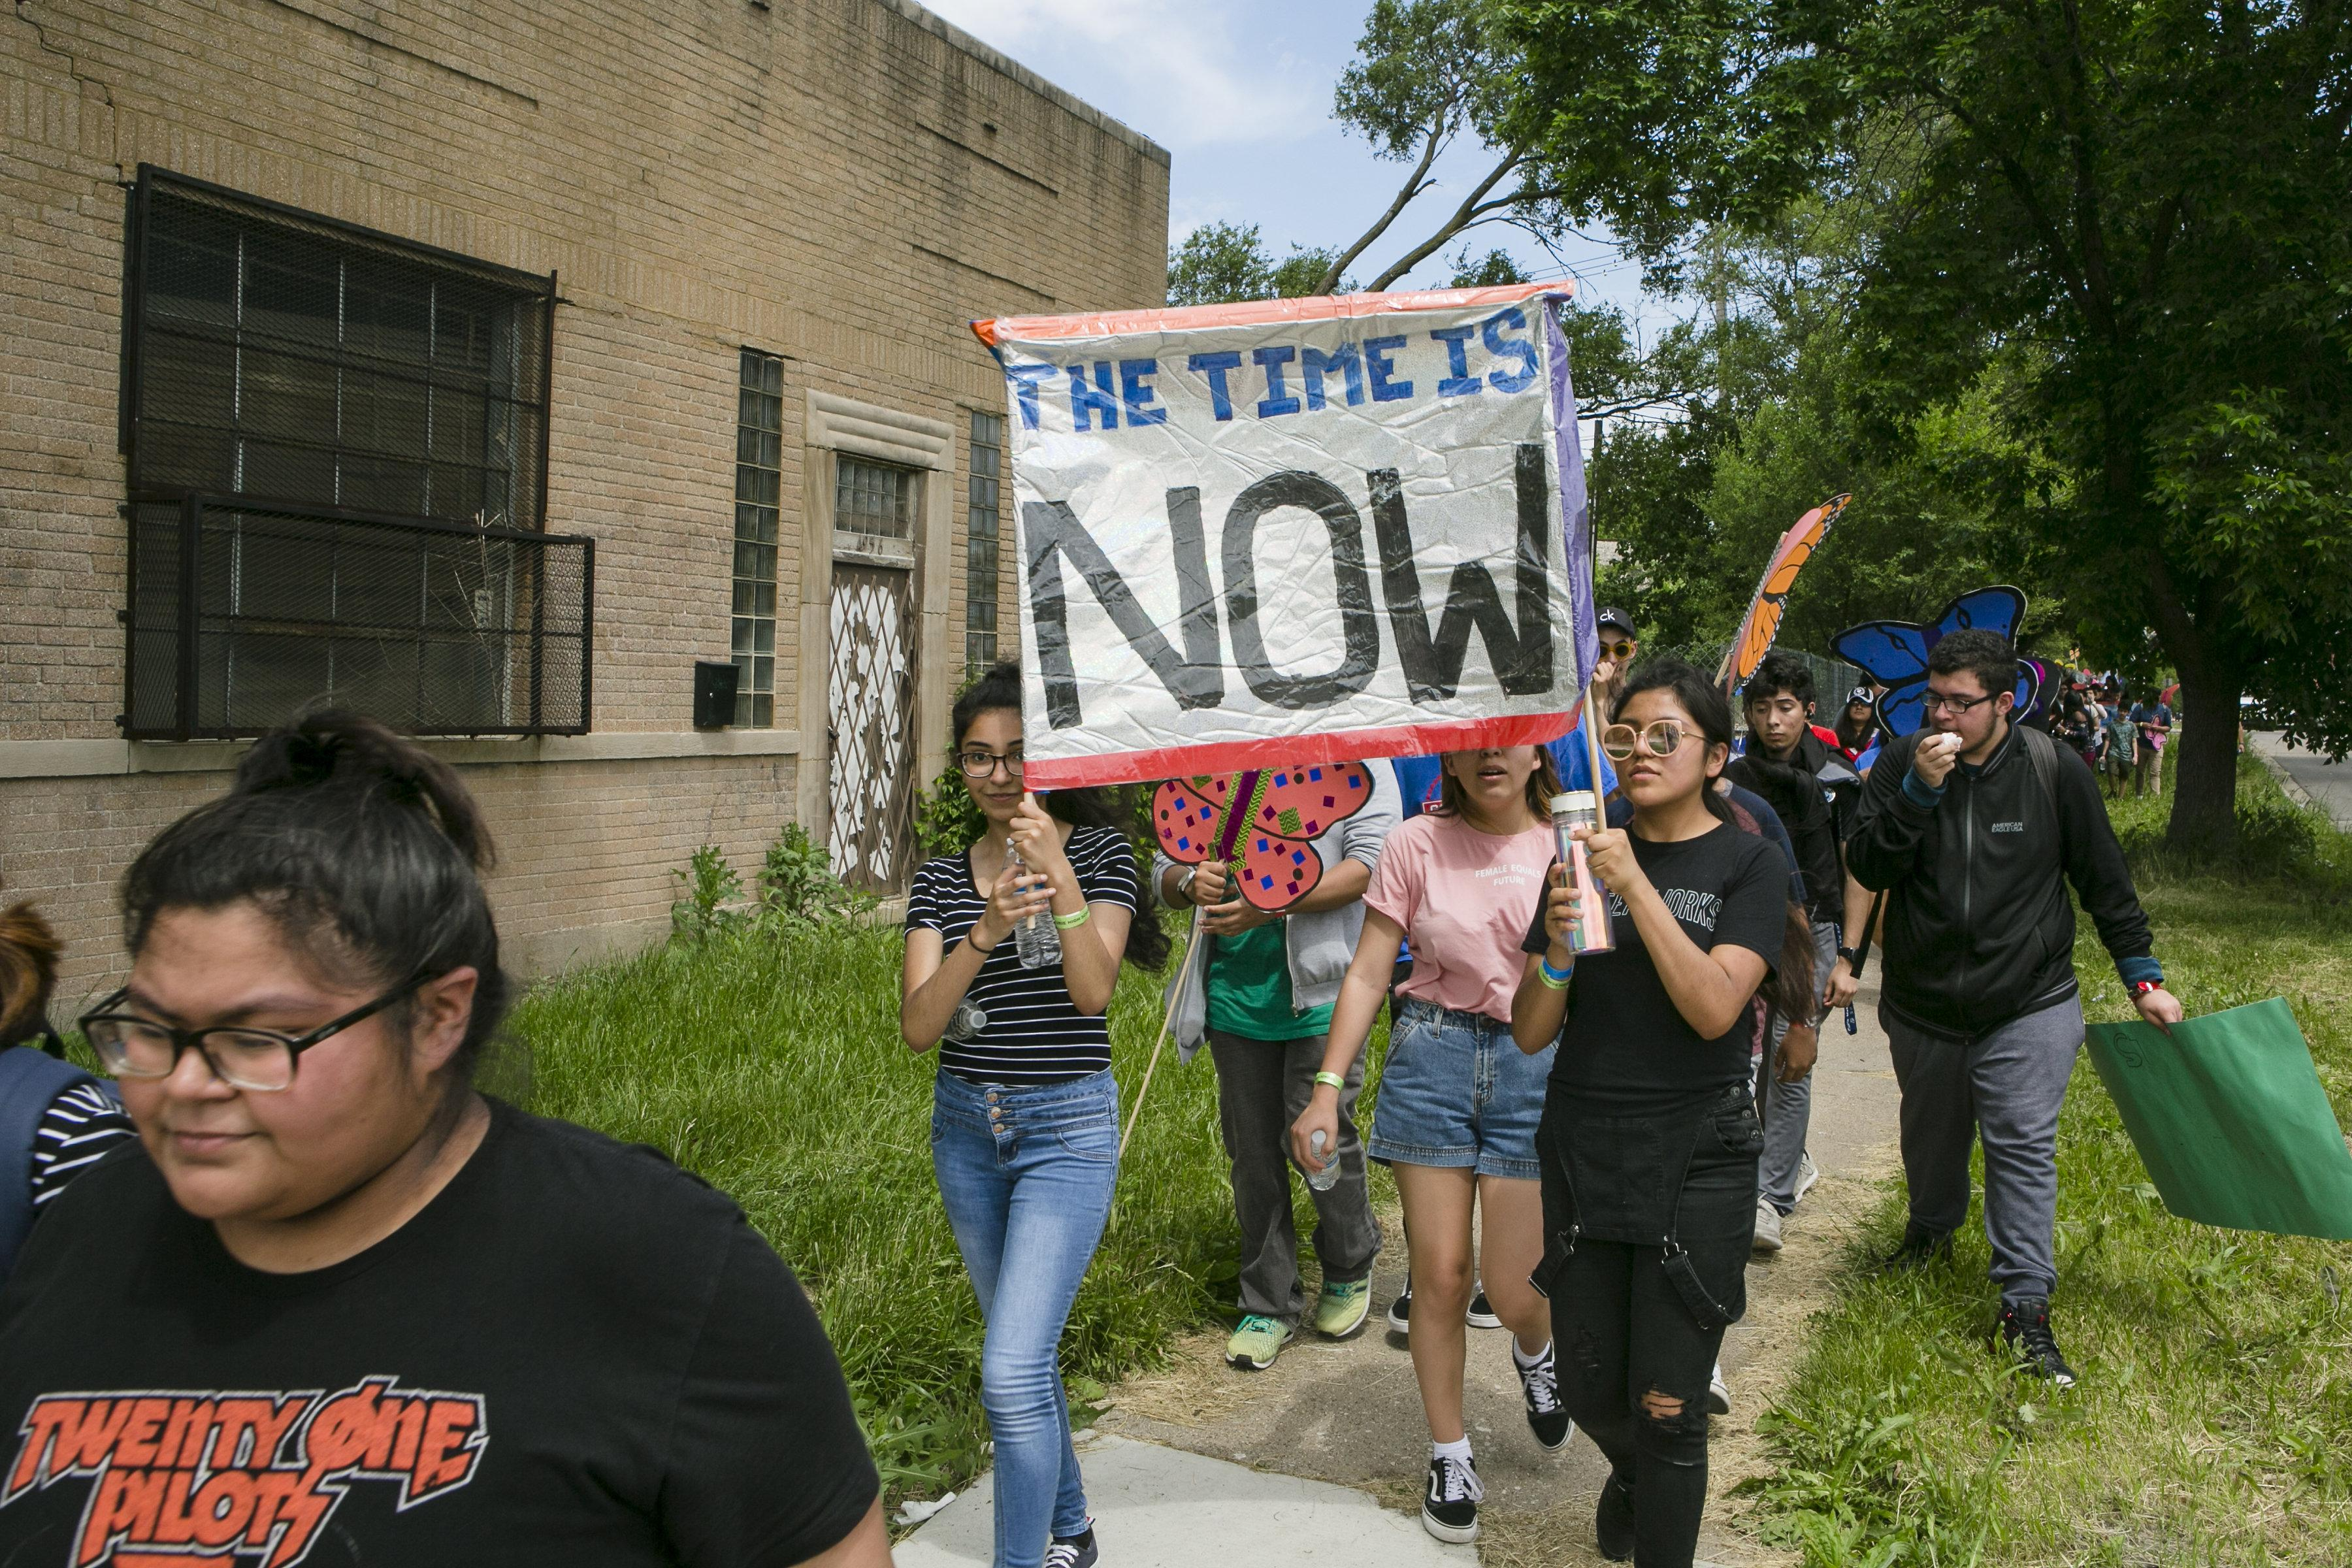 """A large group of young people march down a sidewalk with two people holding a prominent sign that reads """"The Time is Now."""""""